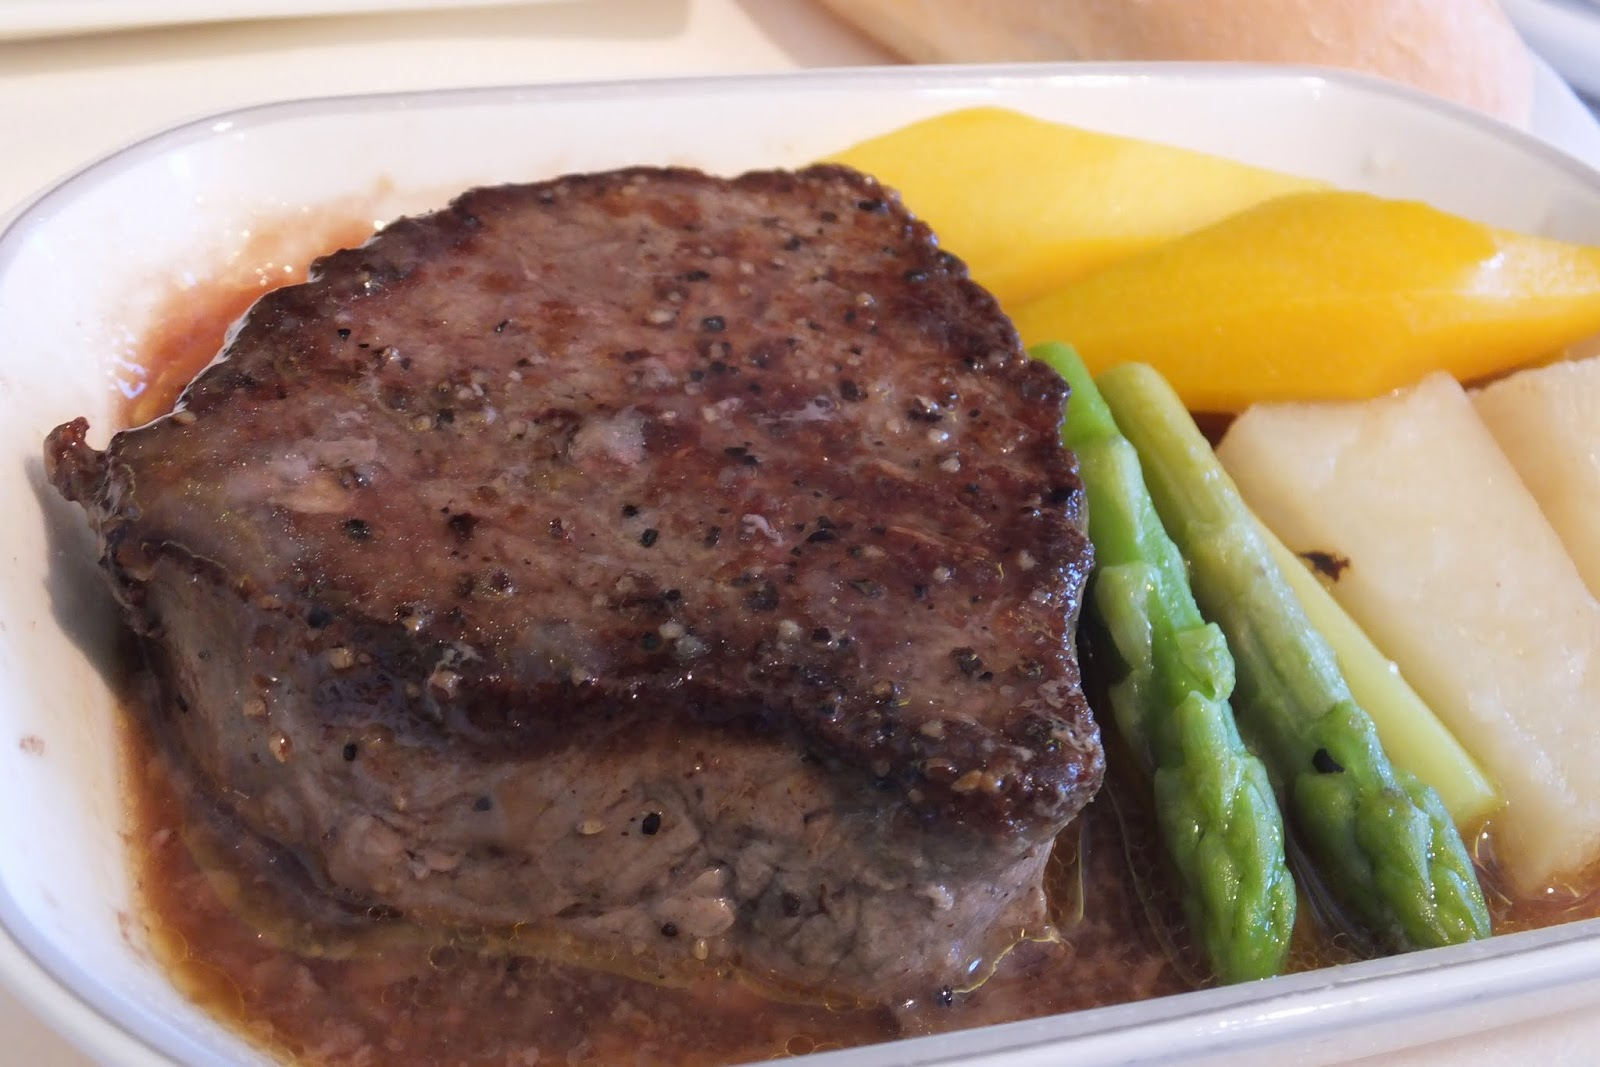 jal-businessclass-flight-meal-steak2